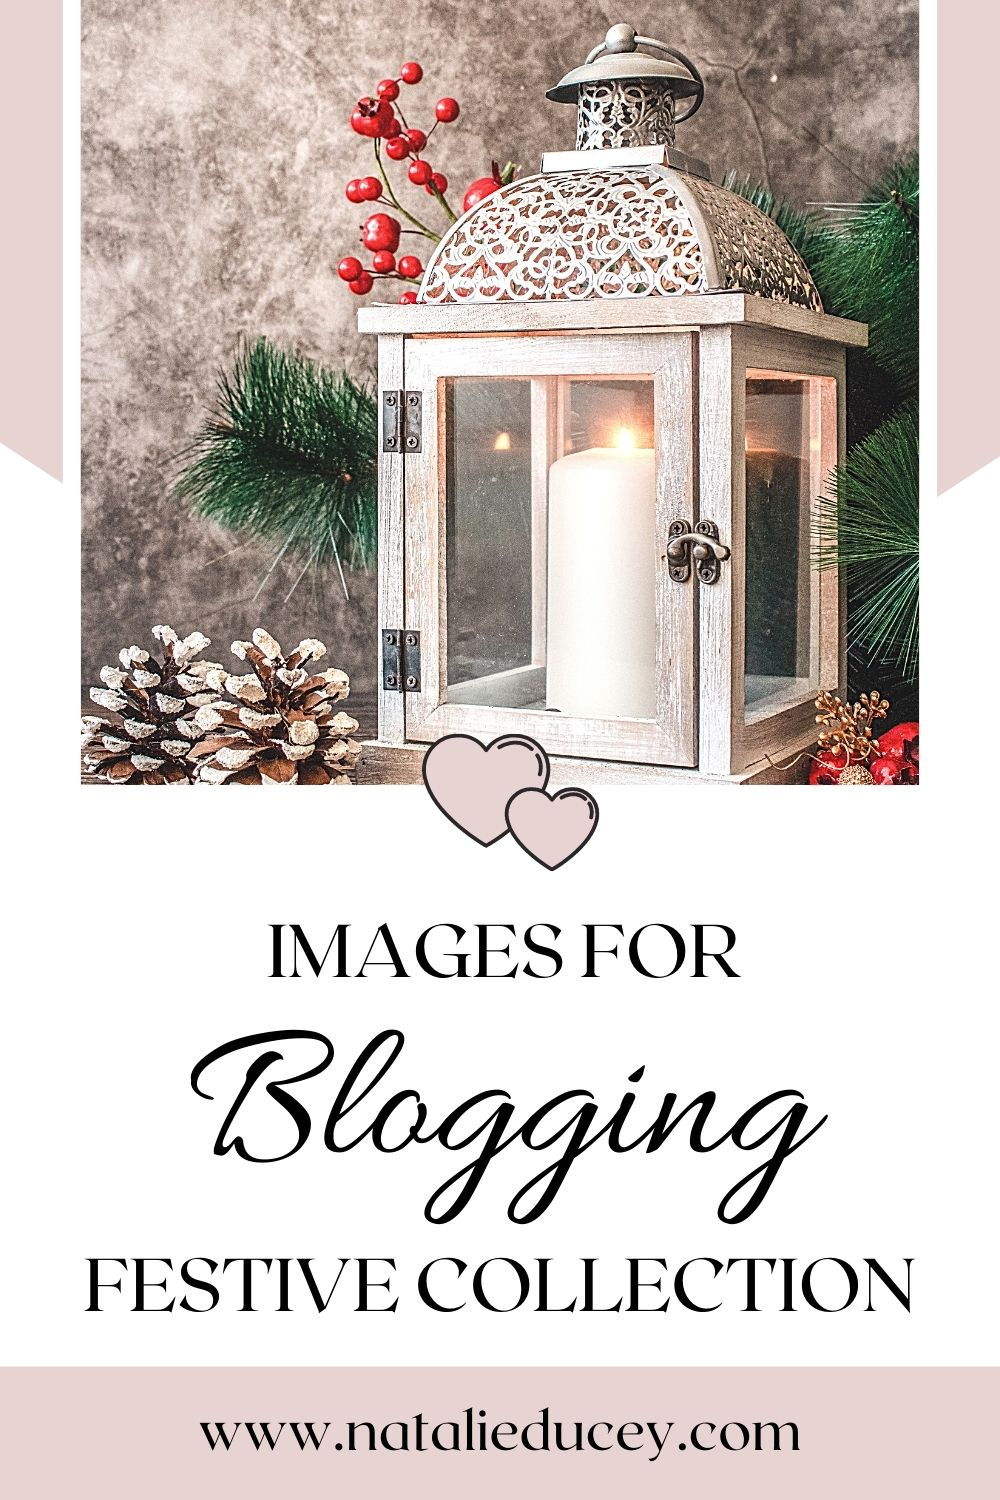 FREE Images for Bloggers this Festive Season!